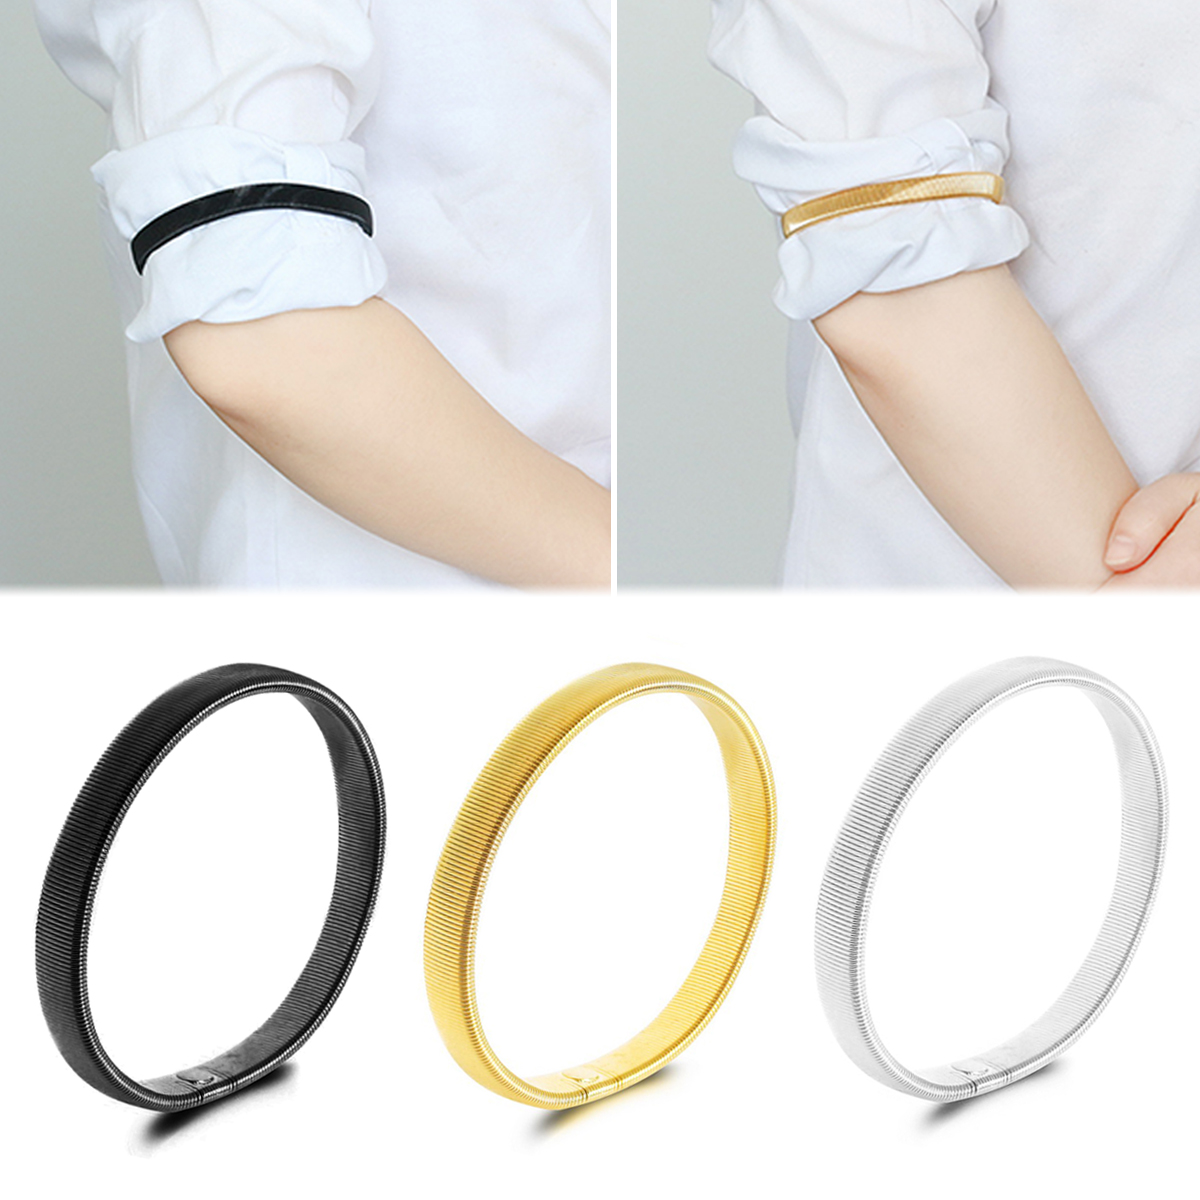 1 Pair Stretchy Elastic Elasticated Metal Shirt Sleeve Holder Garters Arm Bands